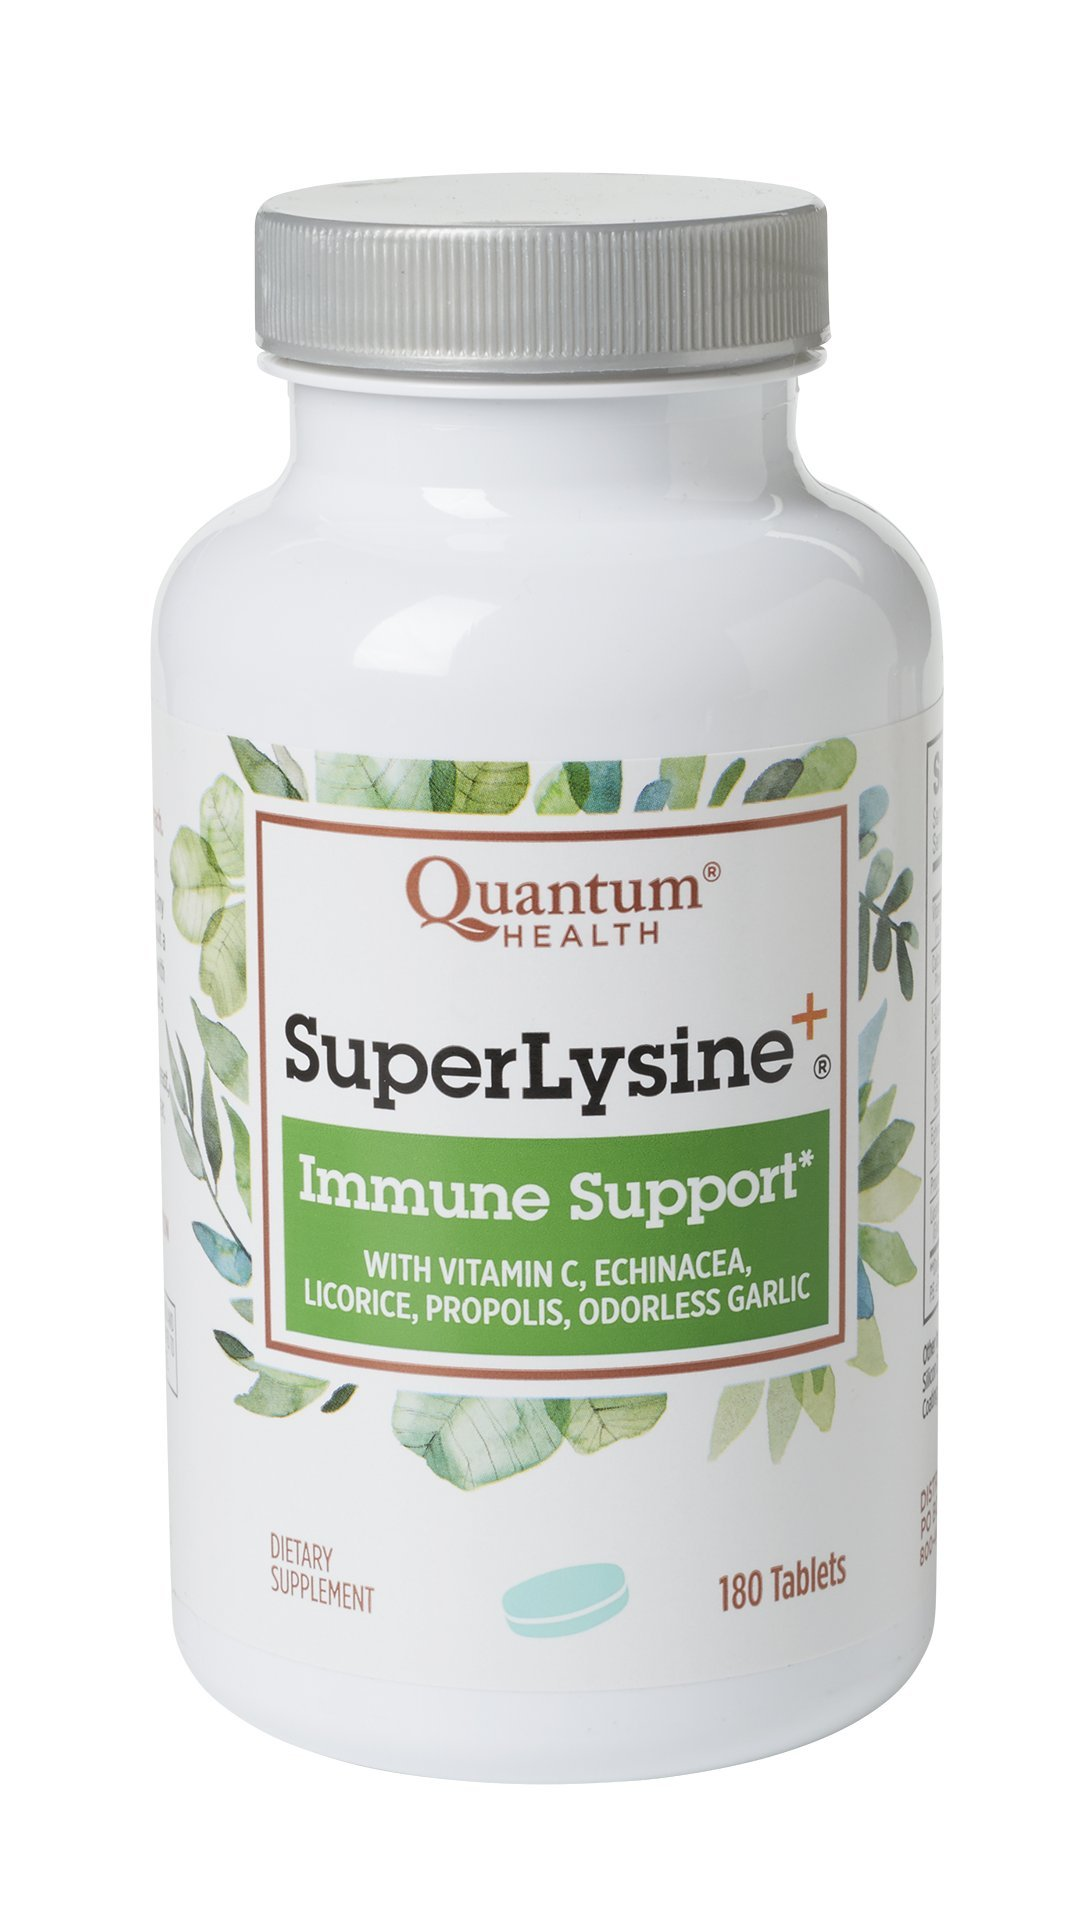 Quantum Health Super Lysine+ / Advanced Formula Lysine+ Immune Support with Vitamin C, Echinacea, Licorice, Propolis, Odorless Garlic (180 Tablets)